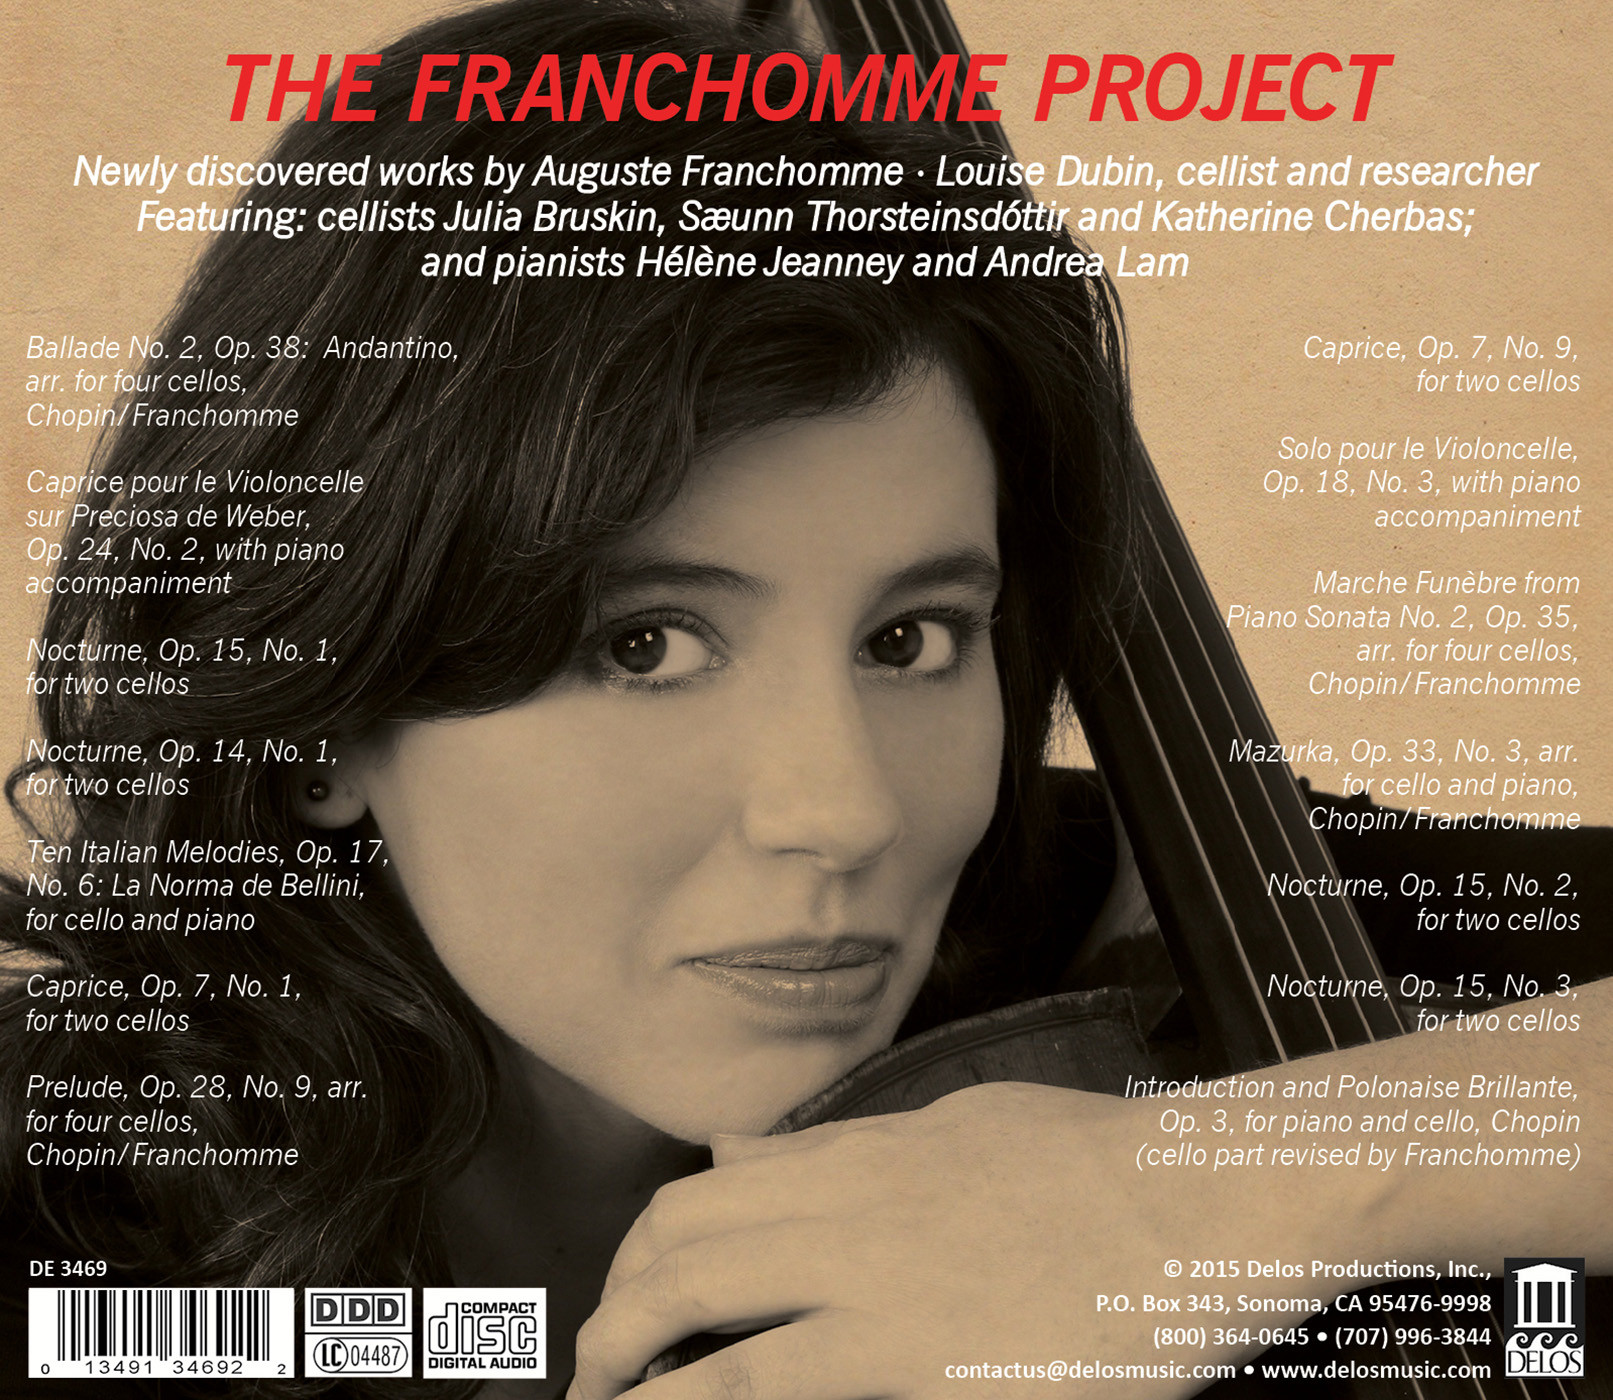 The Franchomme Project - CD Back Cover